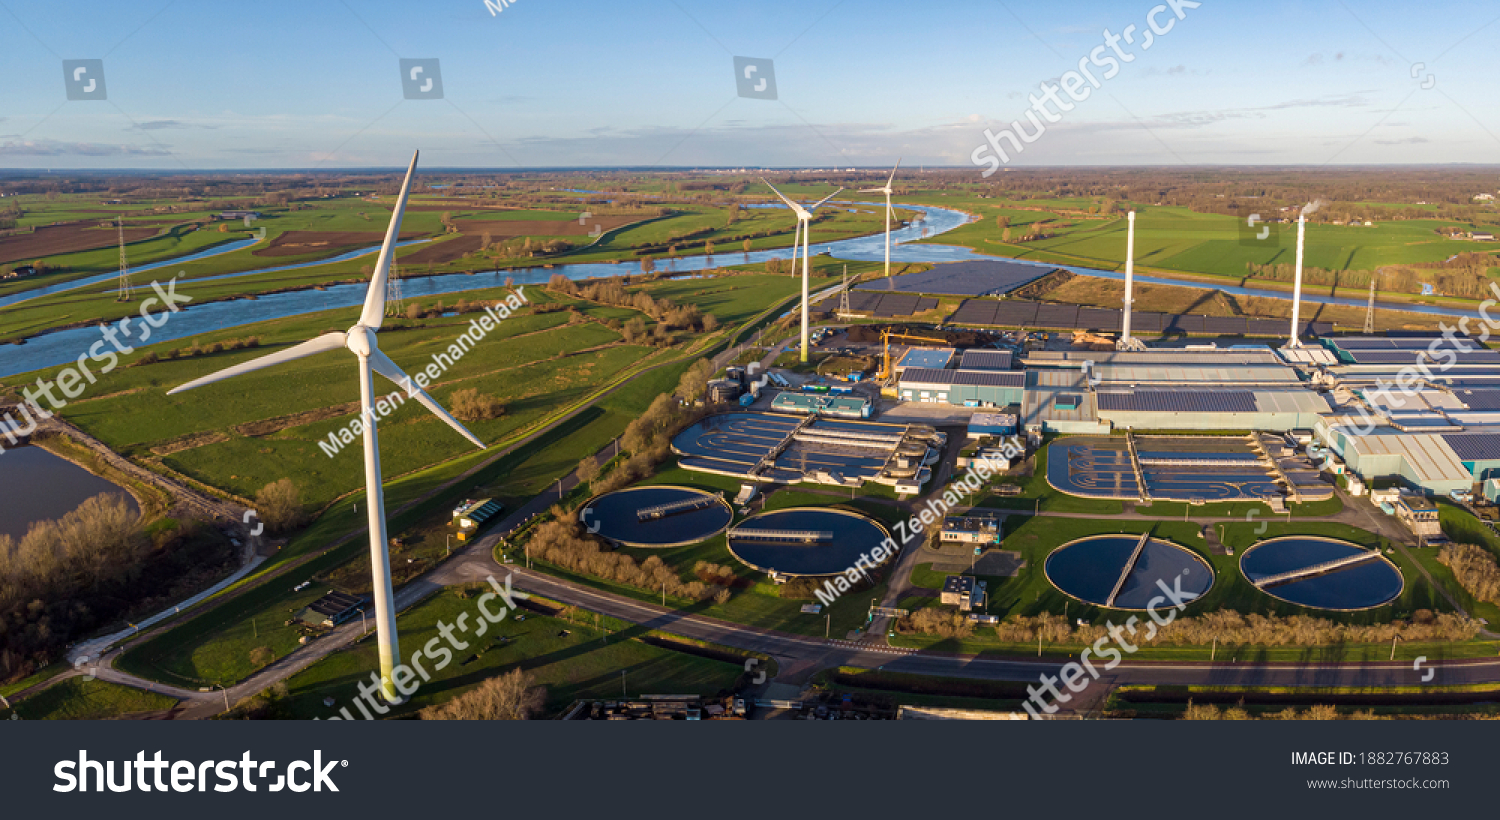 Wind turbines, water treatment and bio energy facility and solar panels in The Netherlands part of sustainable industry in Dutch flat river landscape against blue sky. Aerial circular economy concept. #1882767883